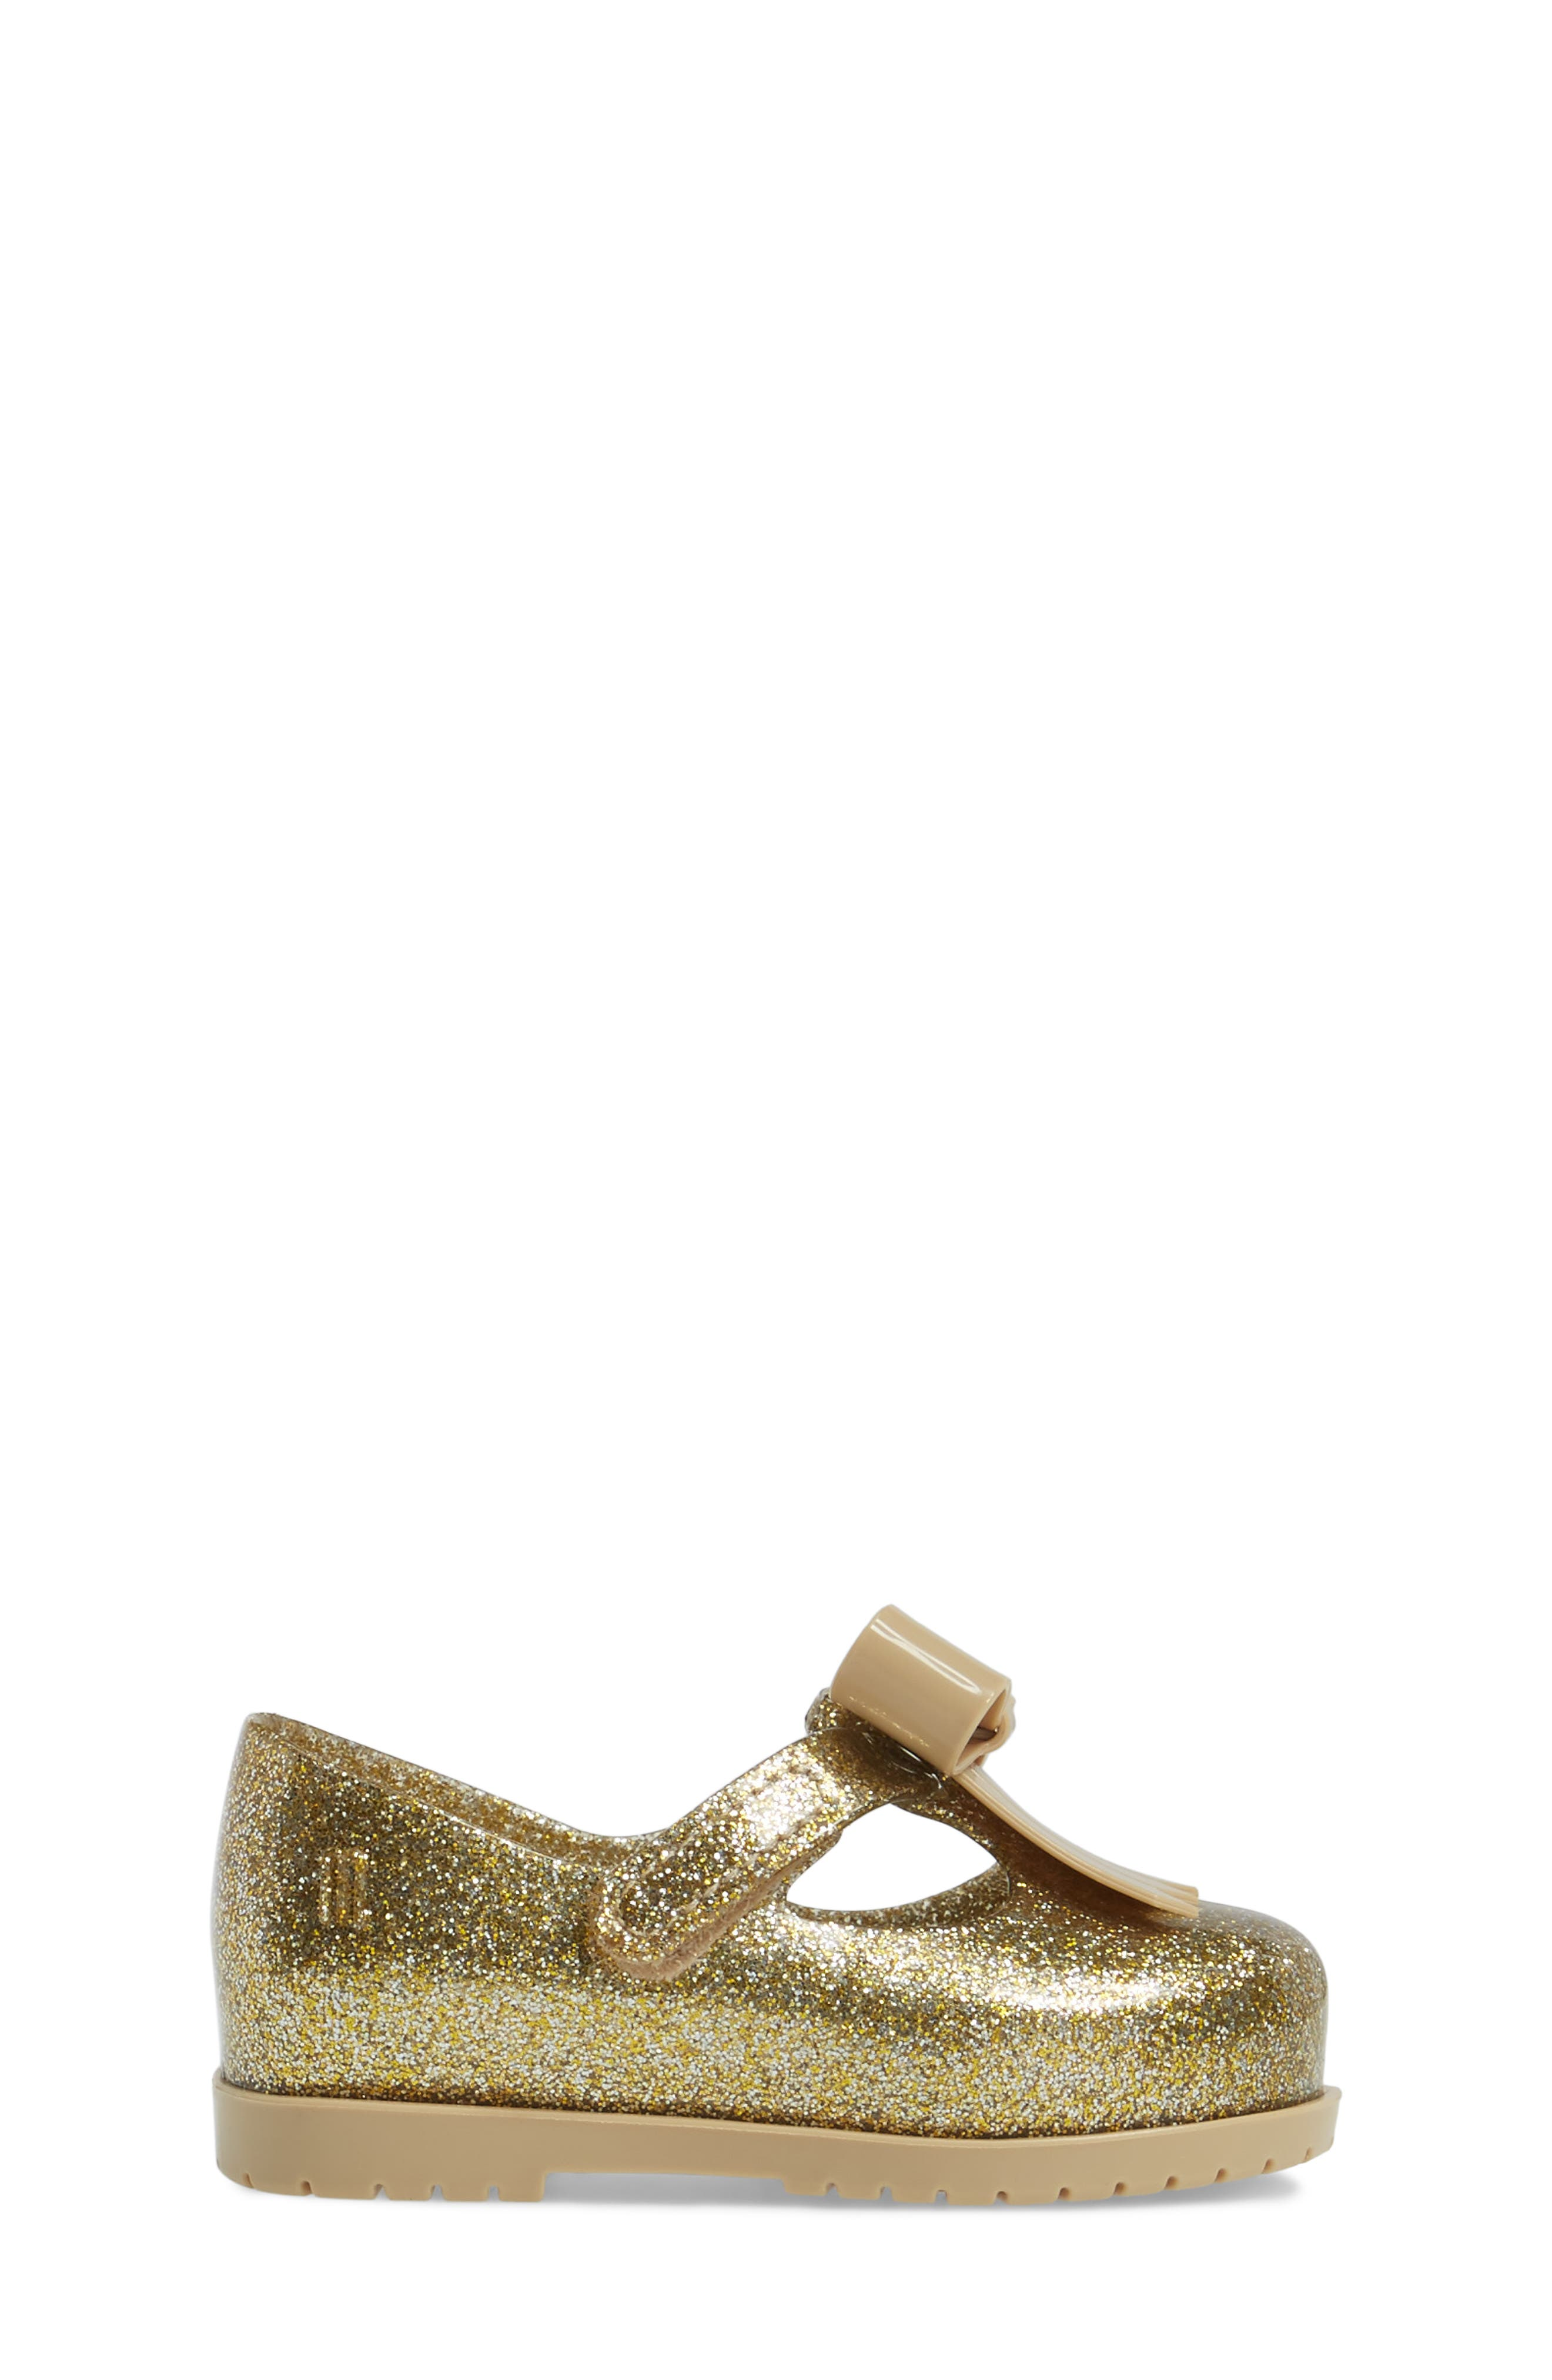 Classic Baby II Mary Jane,                             Alternate thumbnail 3, color,                             Gold Glass Glitter